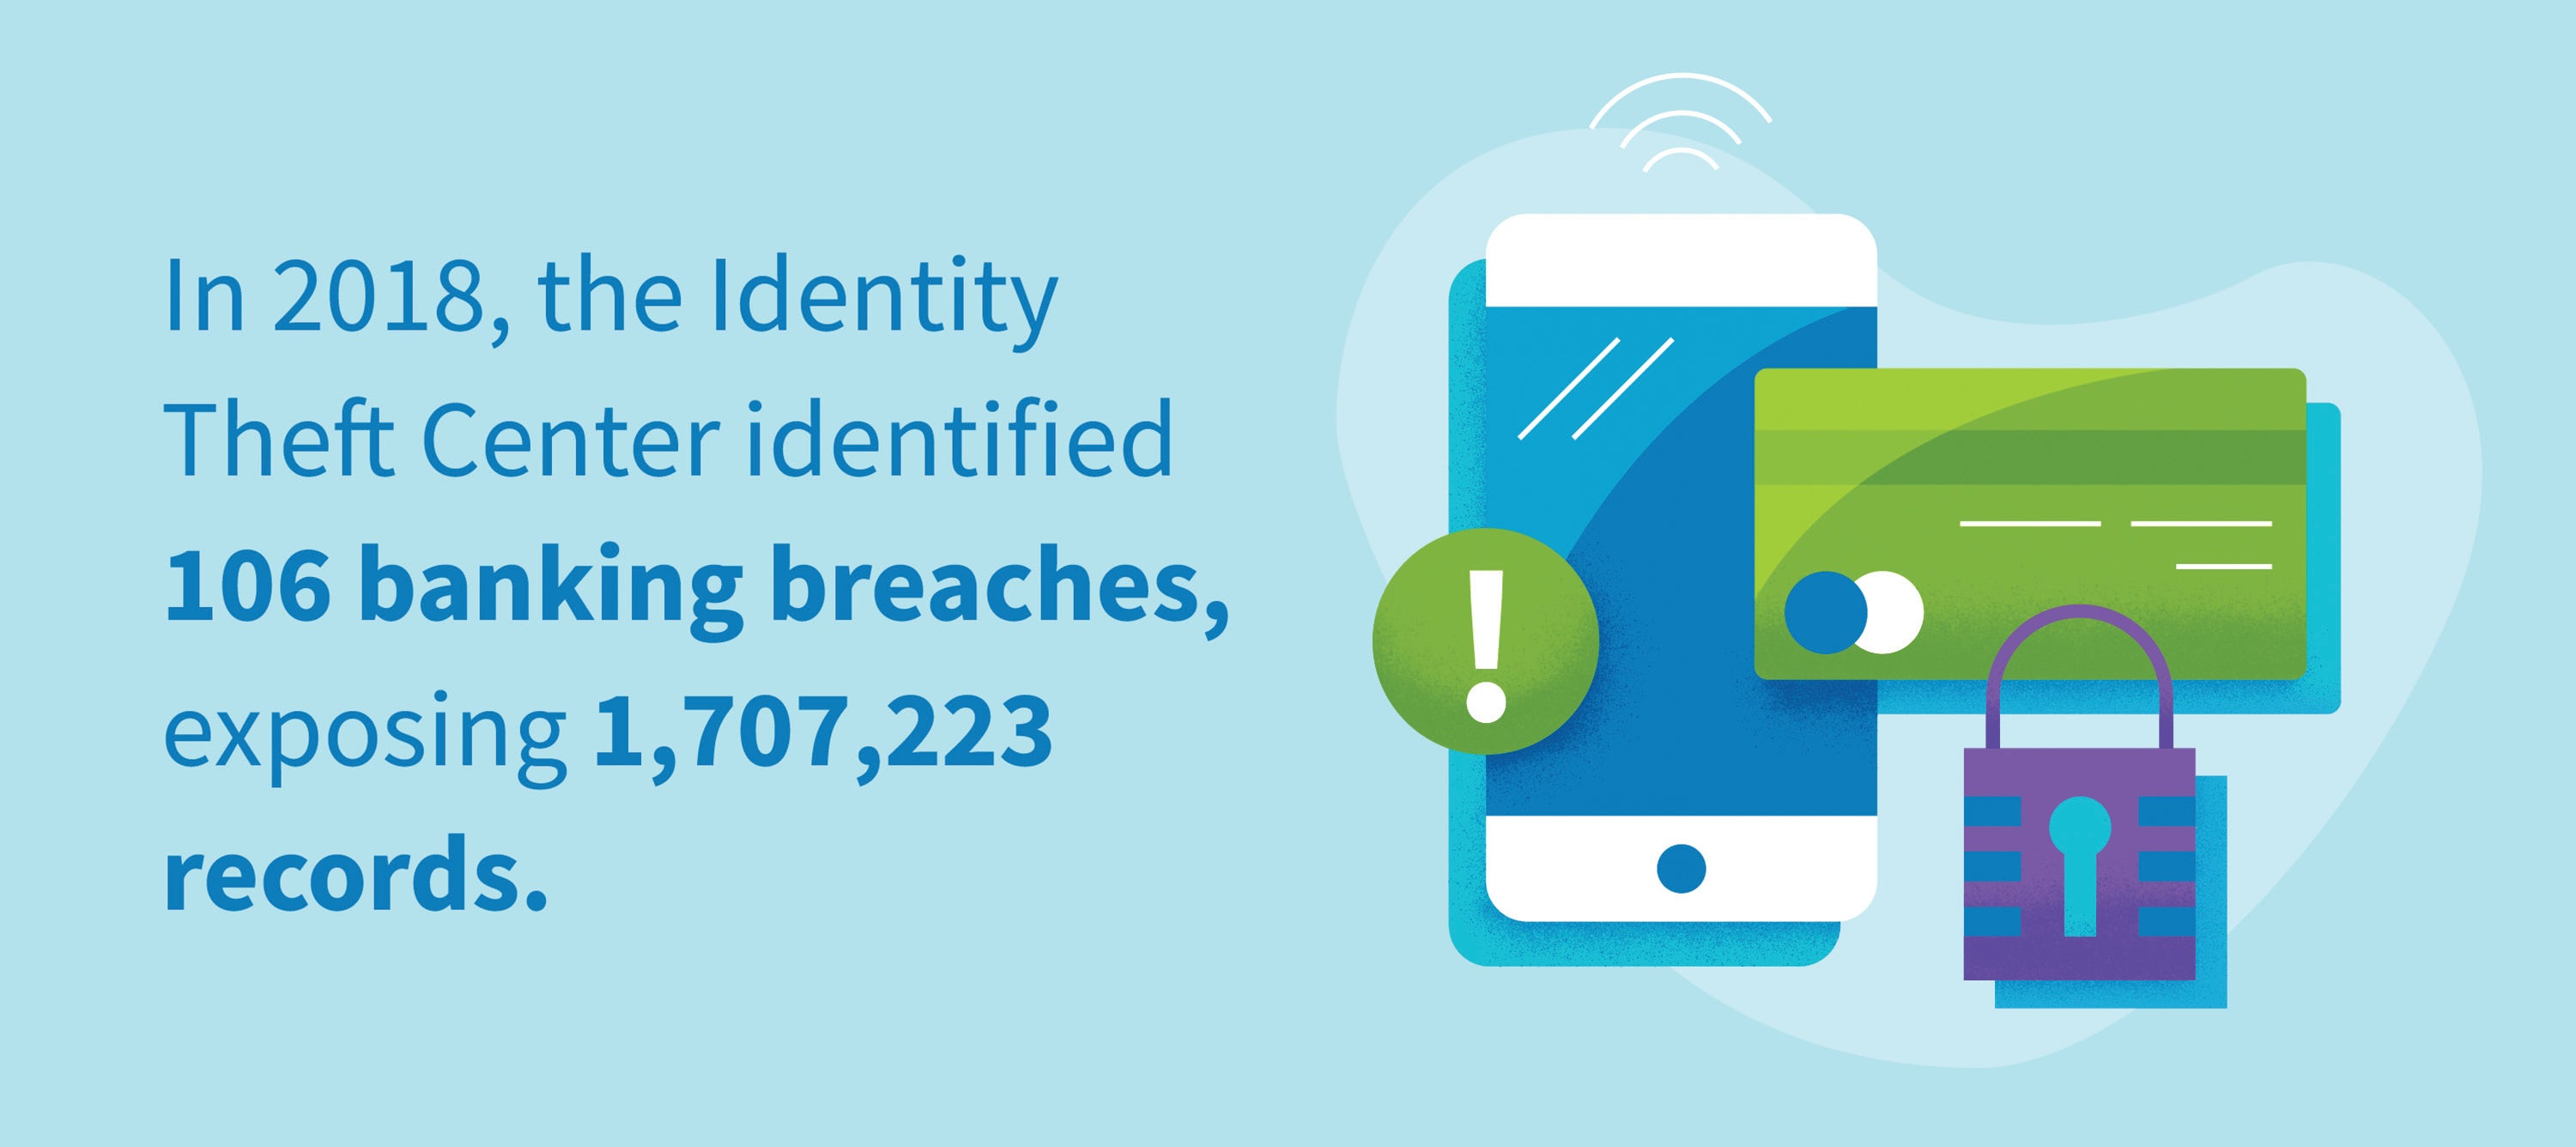 In 2018, The Identity Theft Center identified 106 banking breaches, exposing 1,707,223 records.